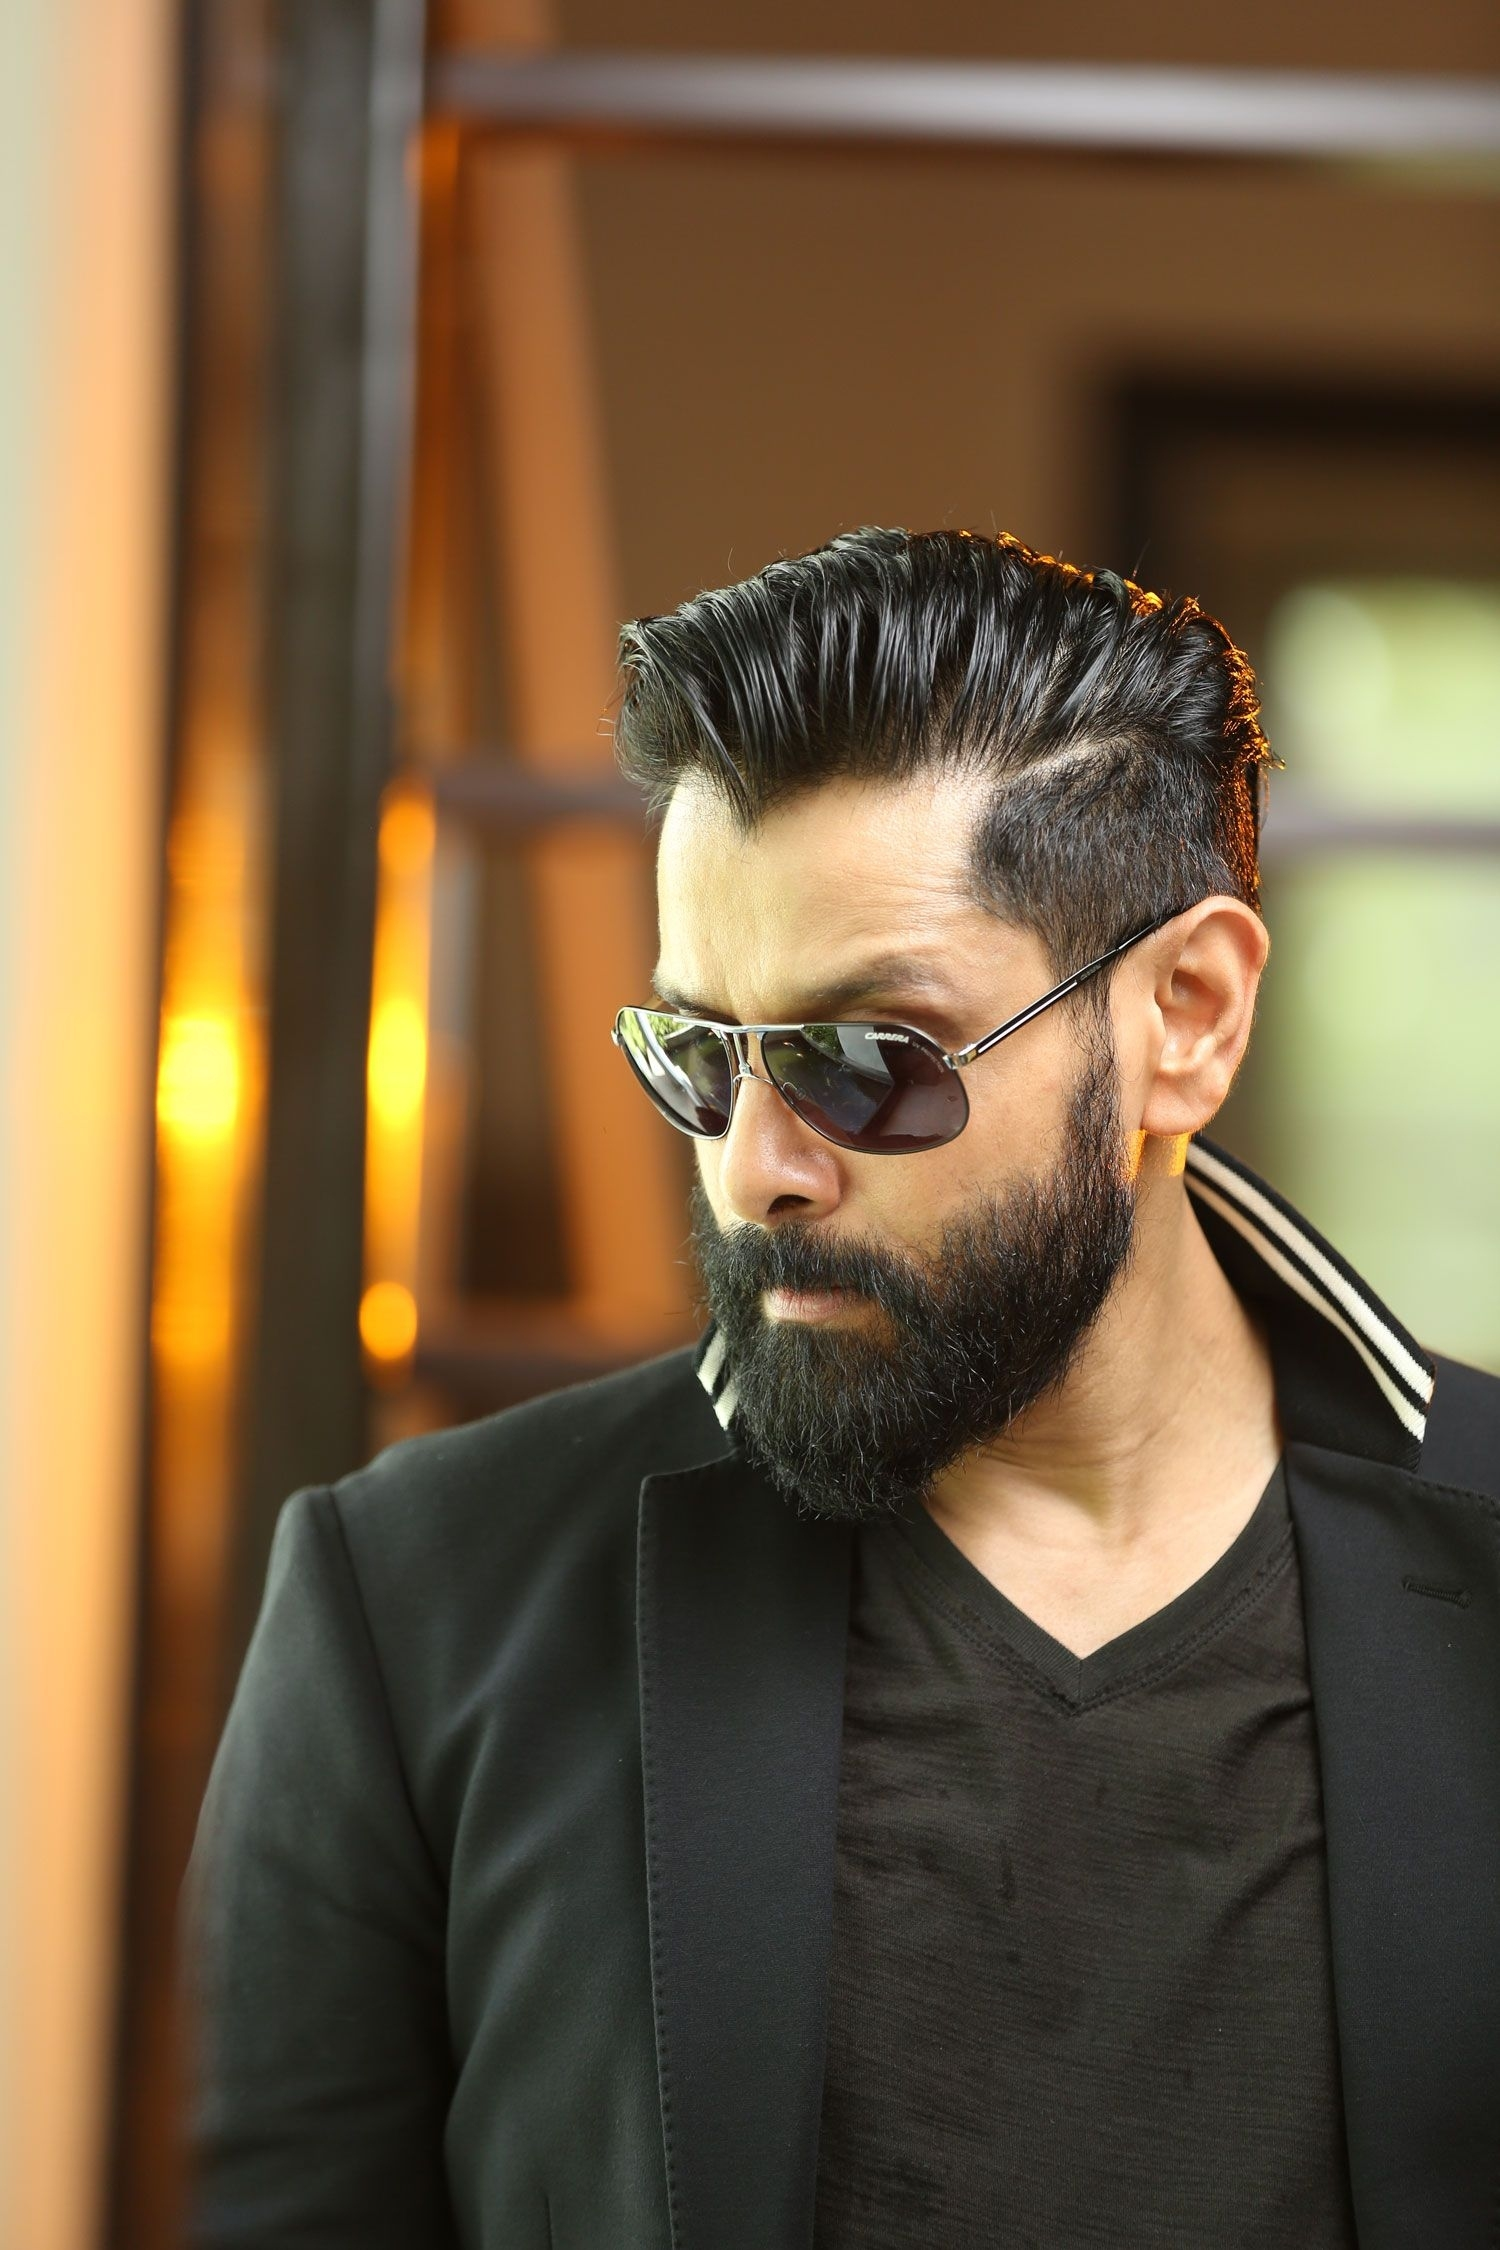 Chiyaan Vikram Latest Photo Shoot Stills | South Indian within South Indian Actors Hairstyle